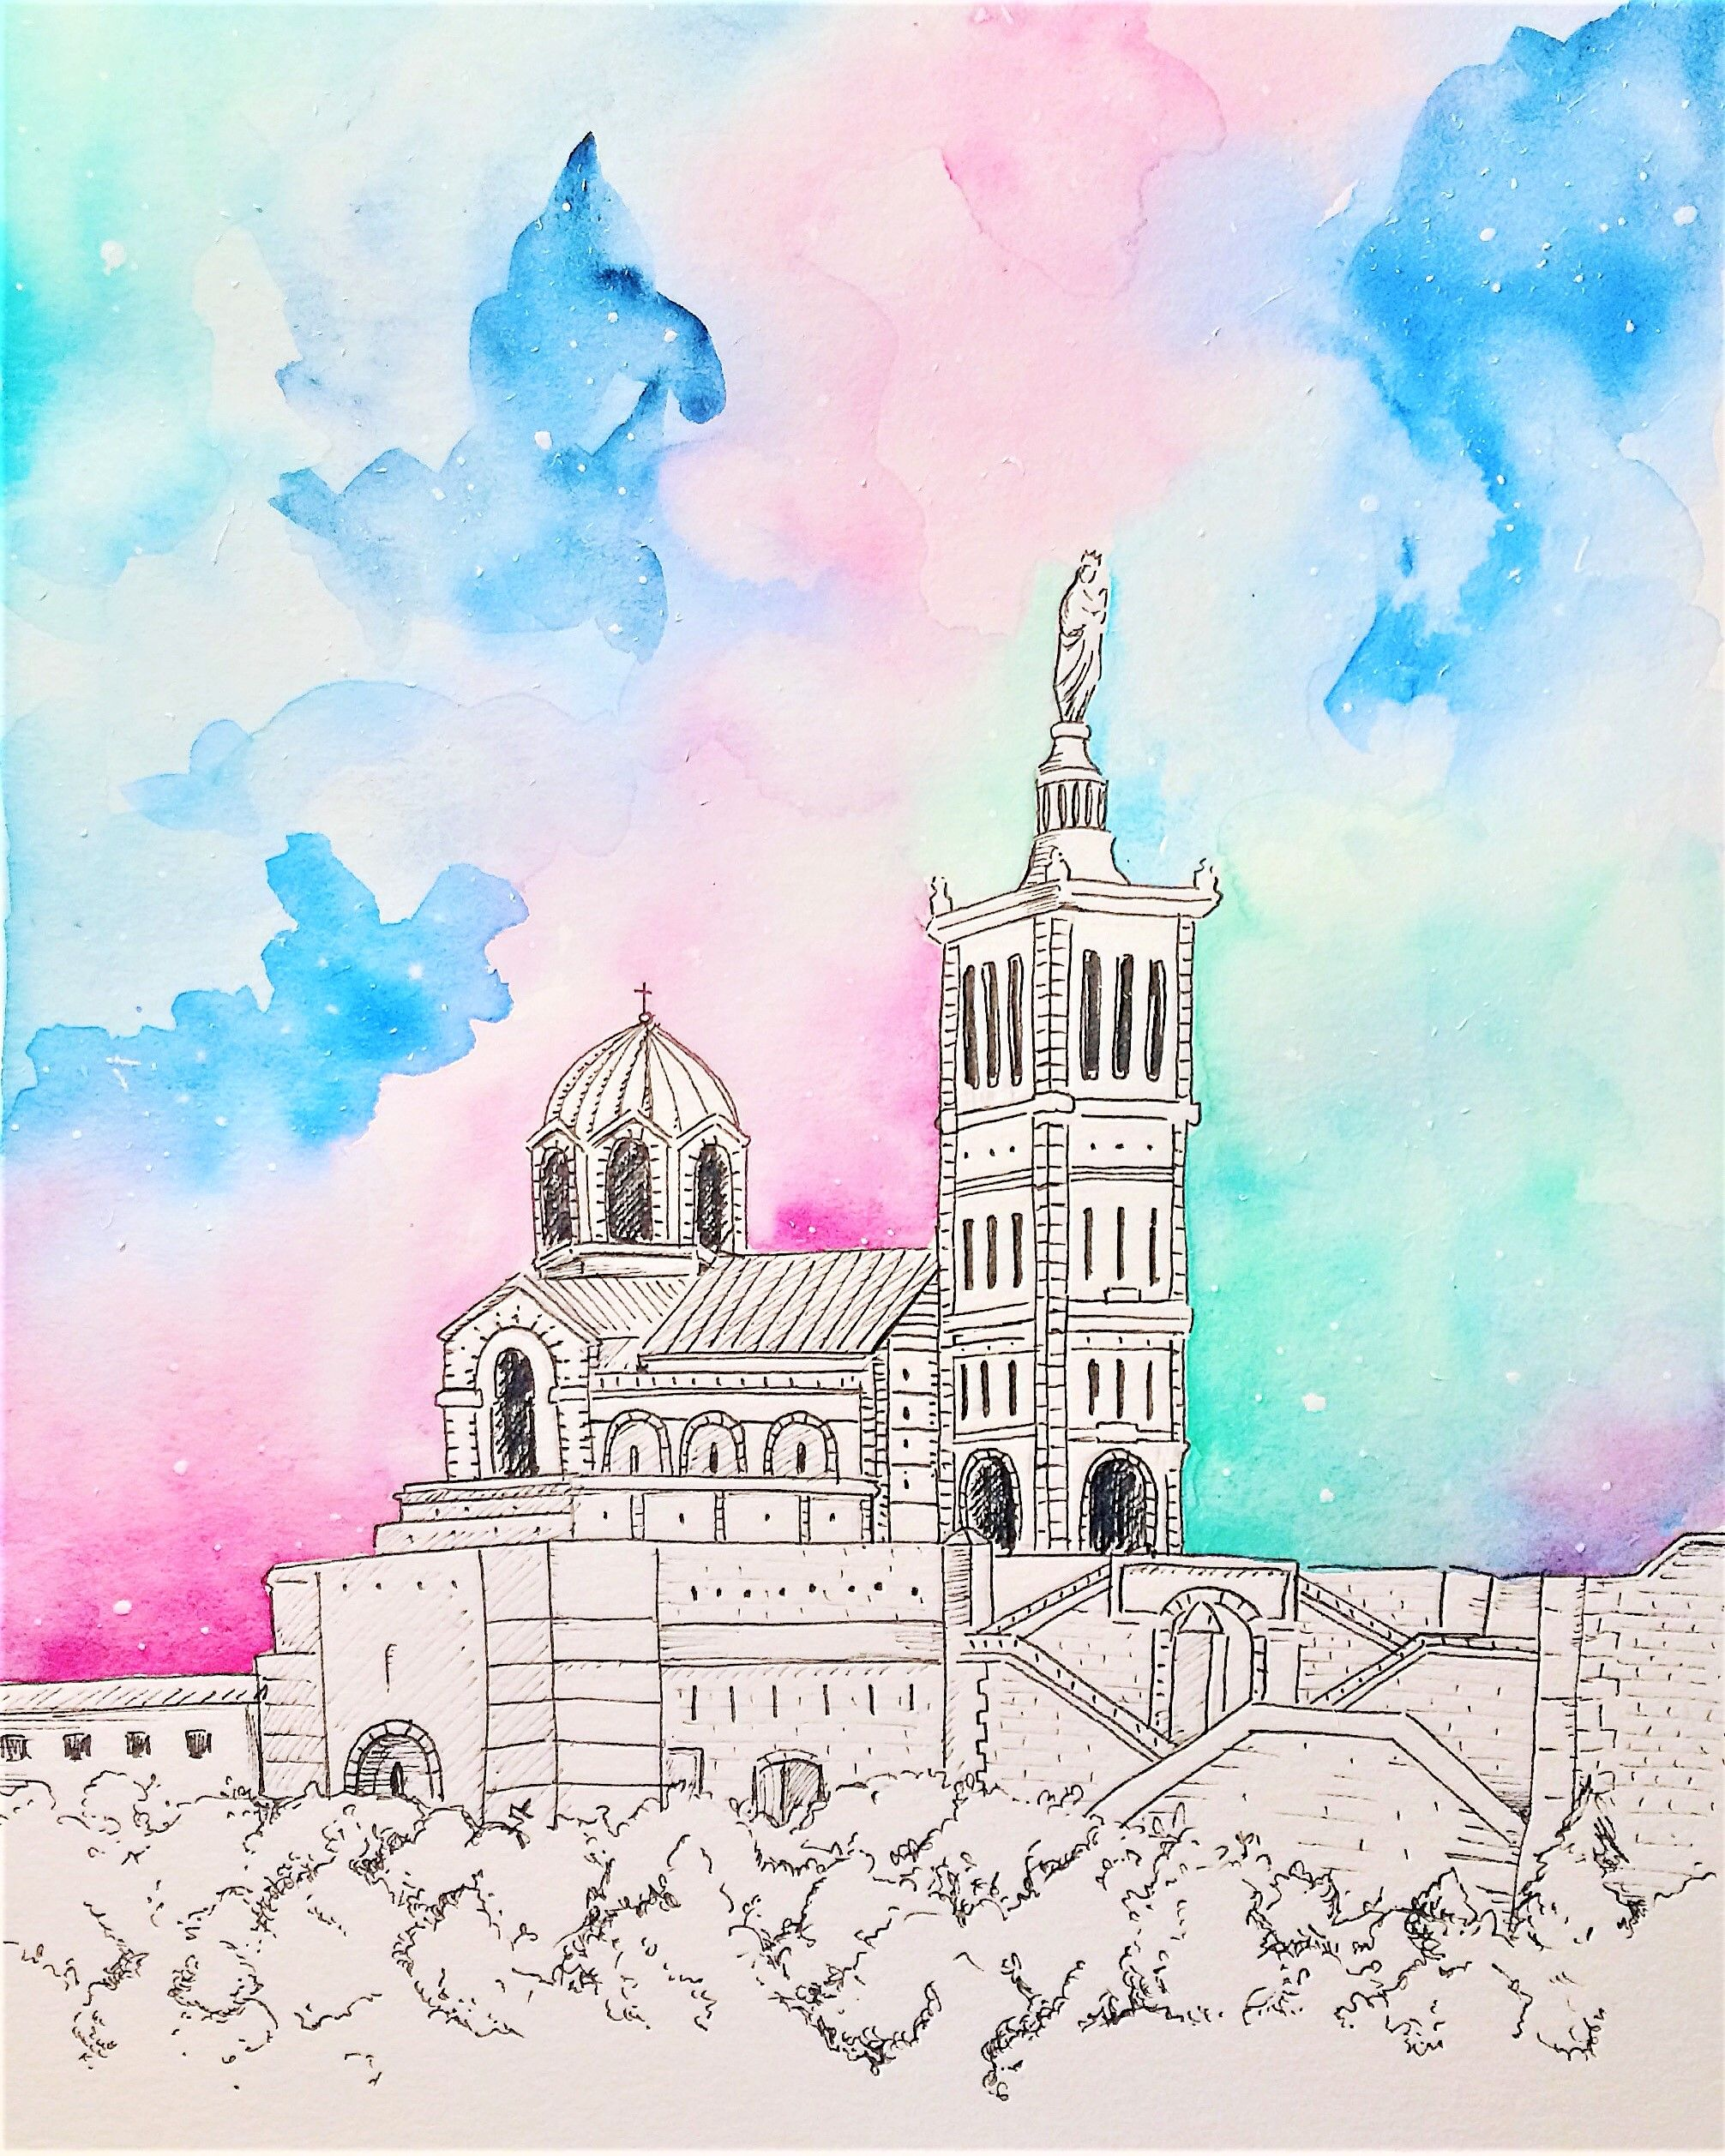 Epingle Par Mona Vicenzo Sur Marseille En 2020 Illustration